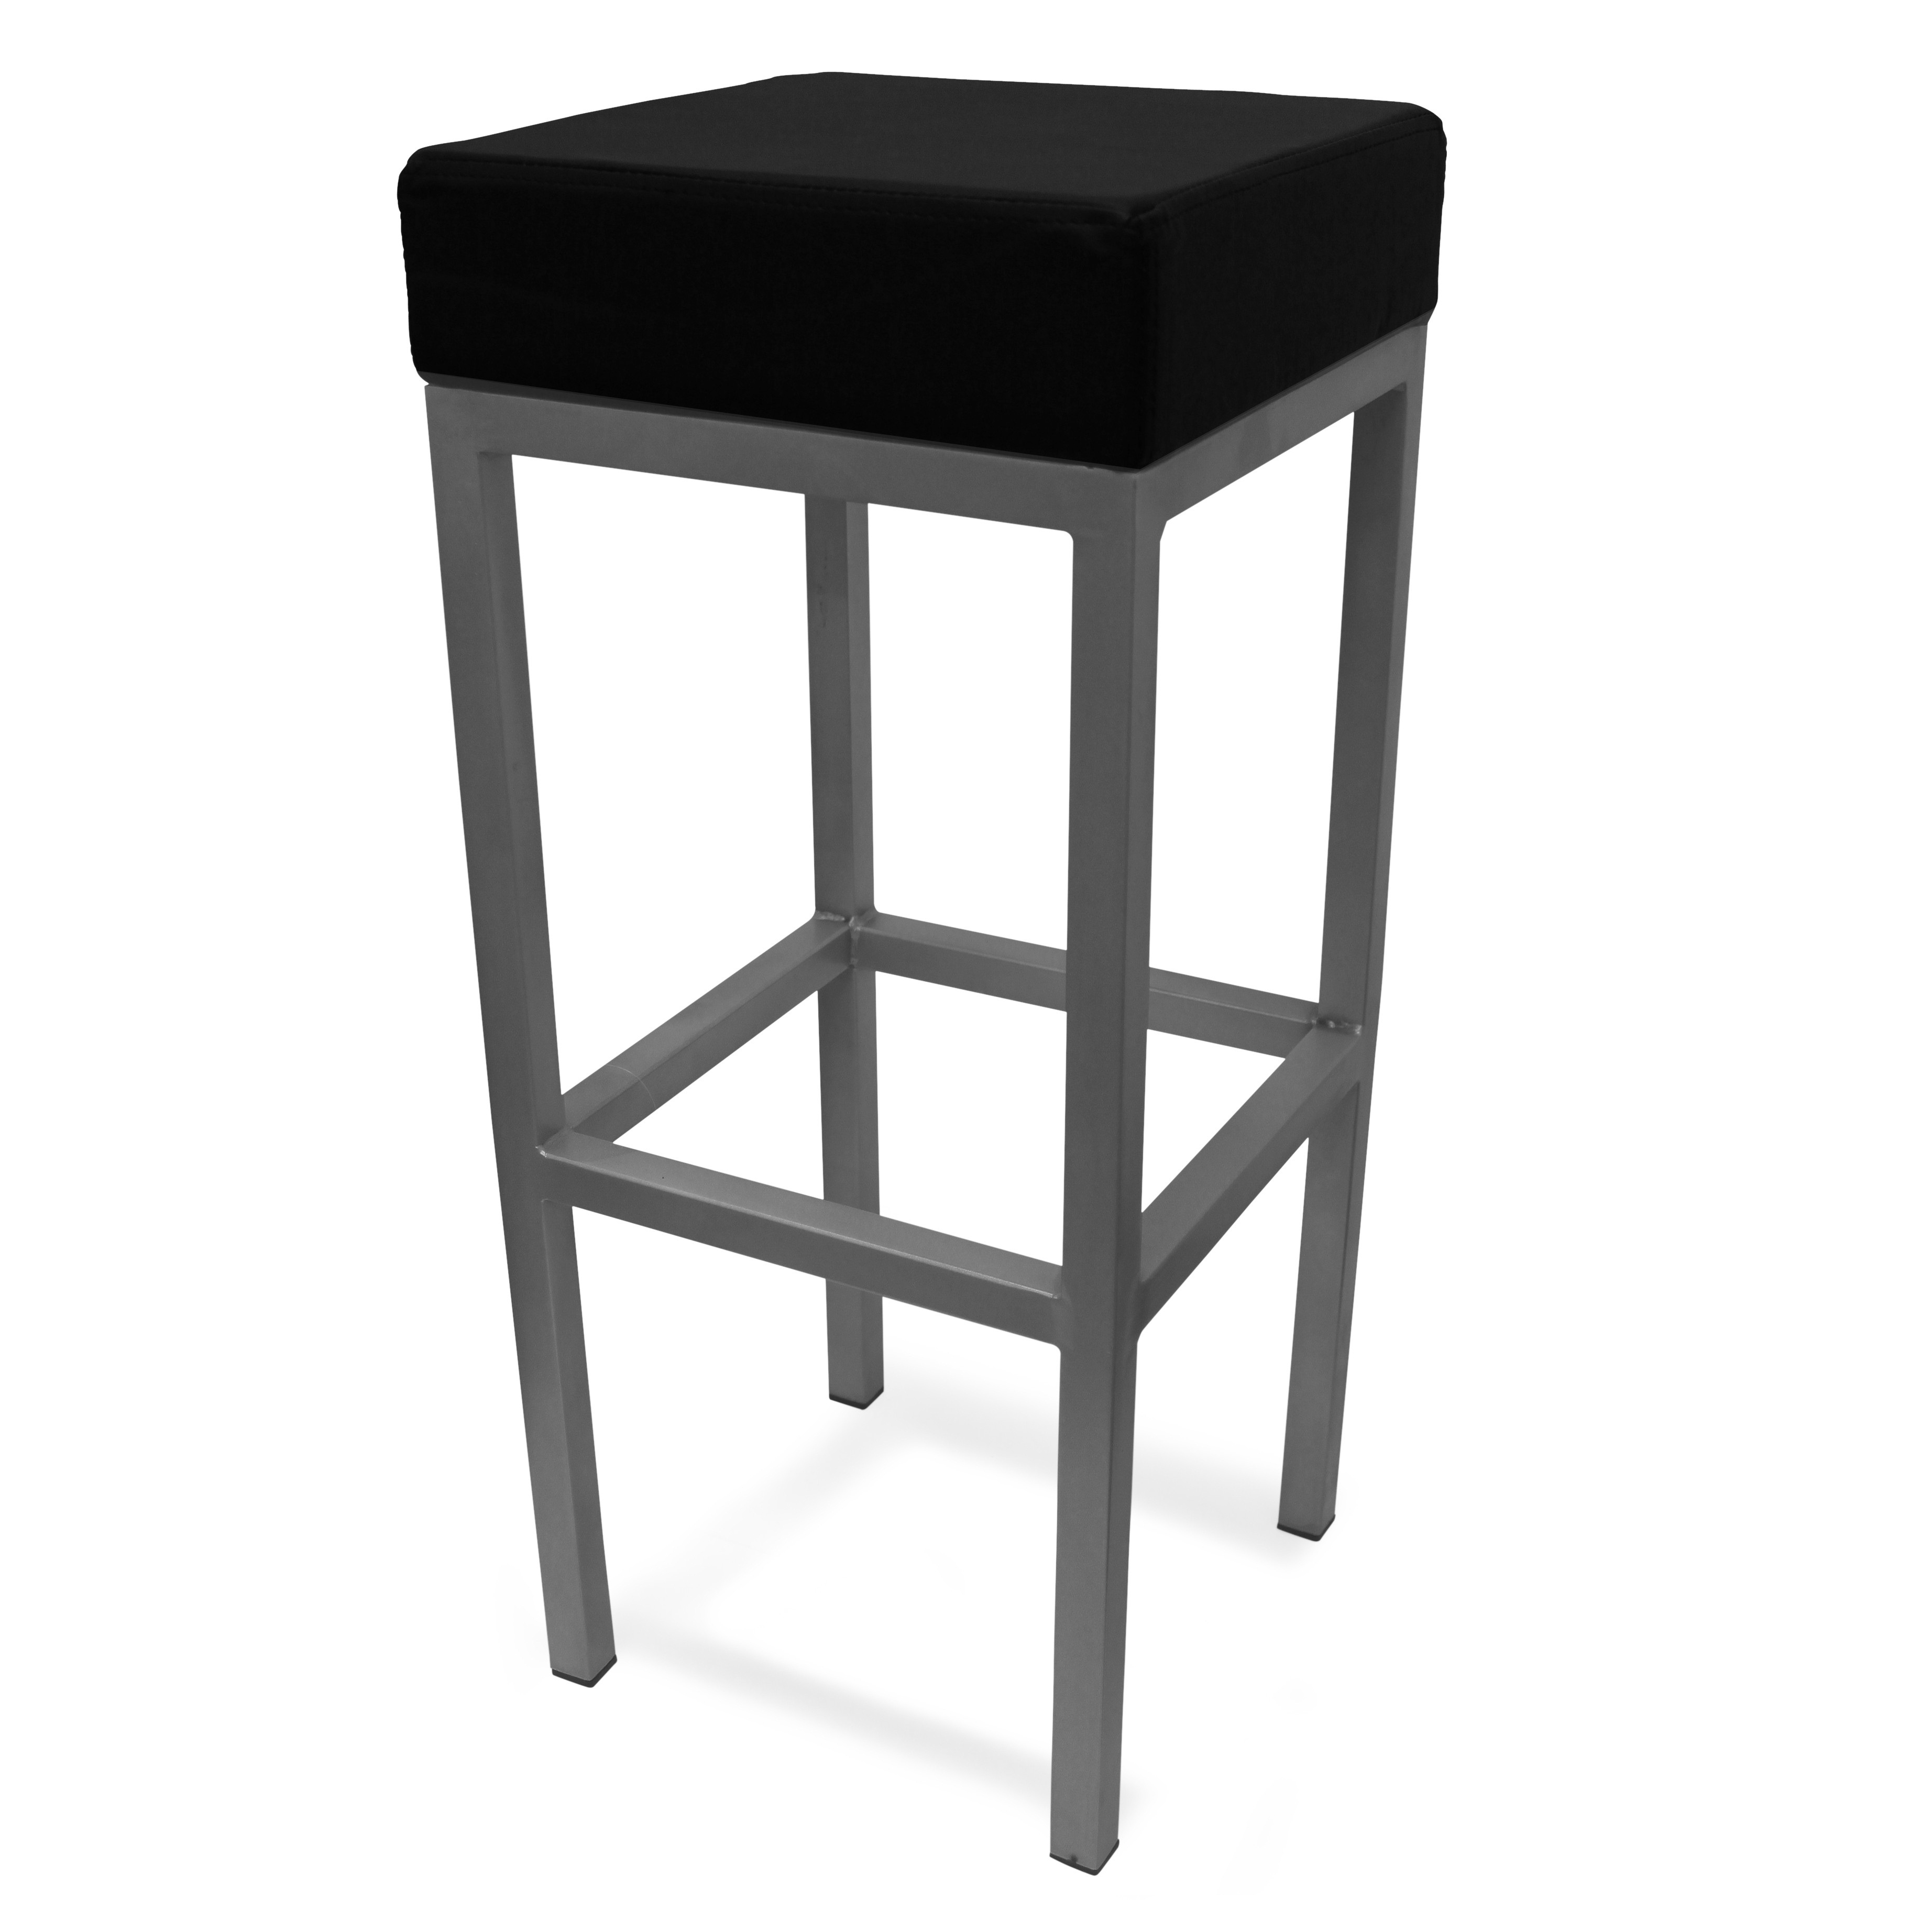 No.2 Best Selling Product In This Category: Cube Bar Stool Black